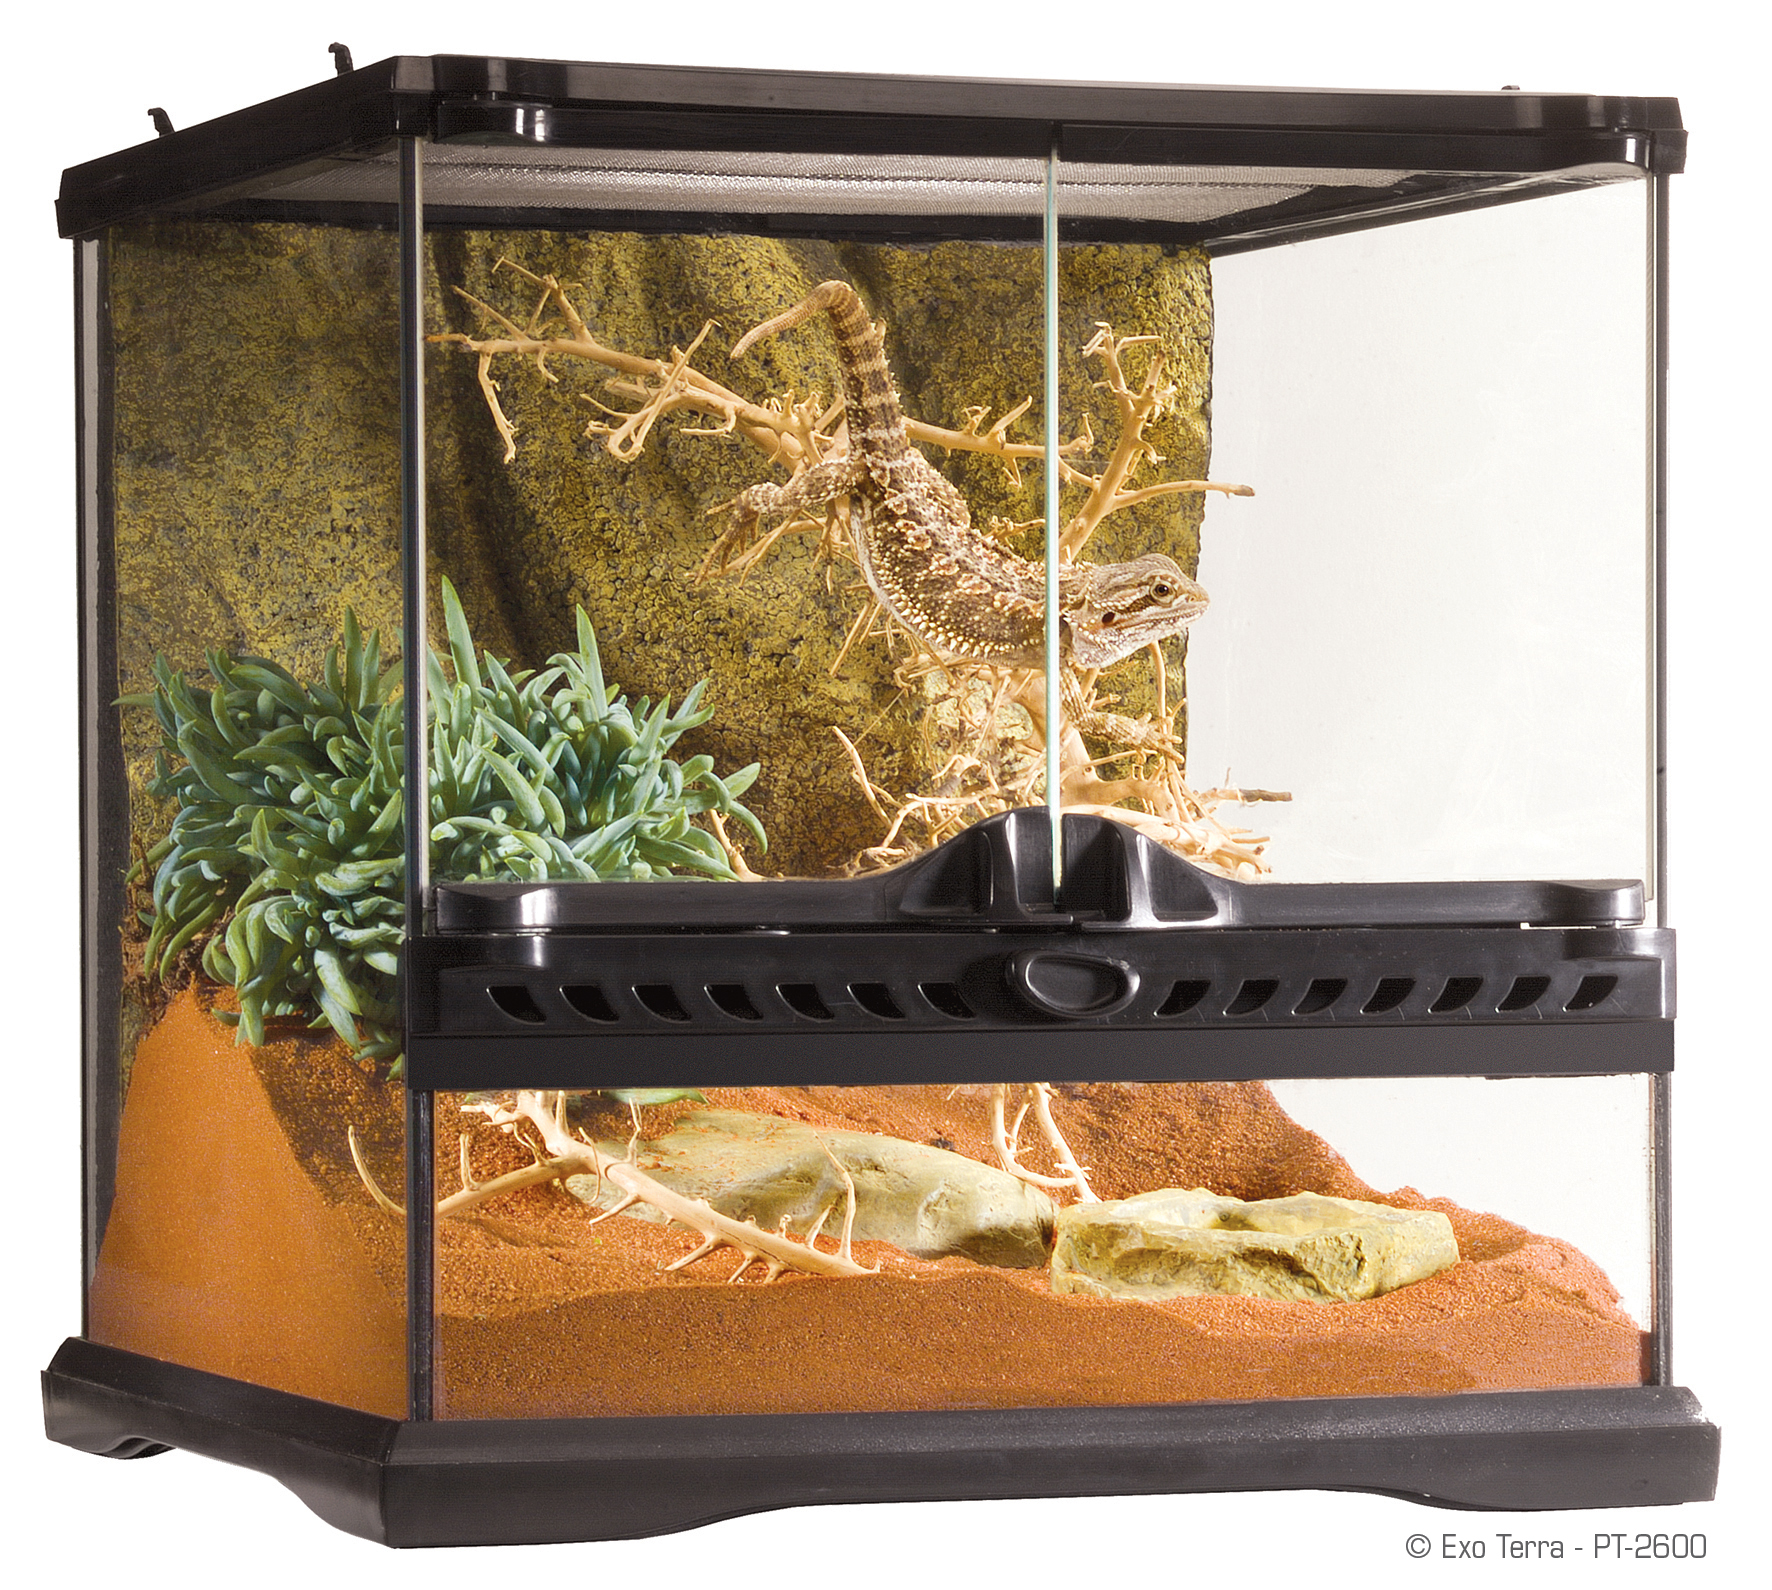 Exo Terra Natural Terrarium Mini Advanced Reptile Habitat